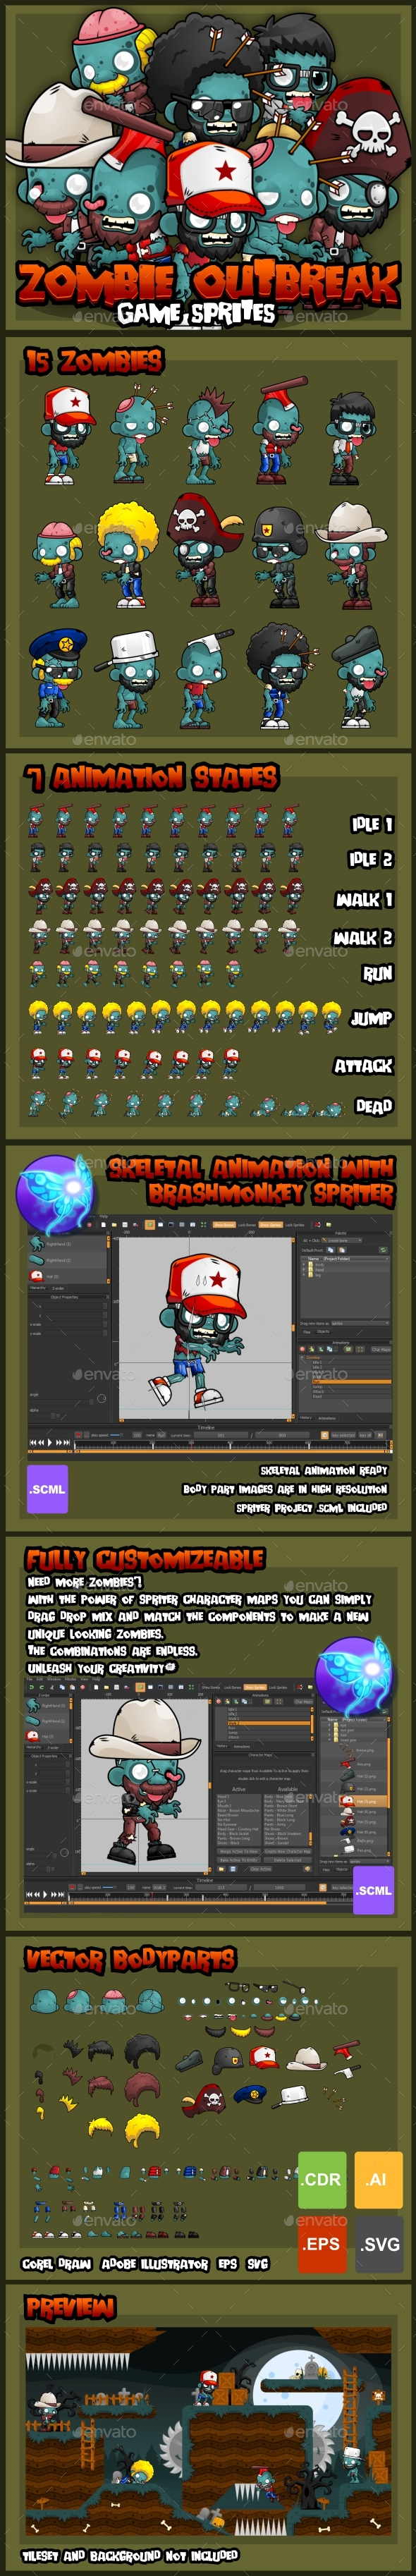 Zombie Outbreak - Game Sprites - Sprites Game Assets